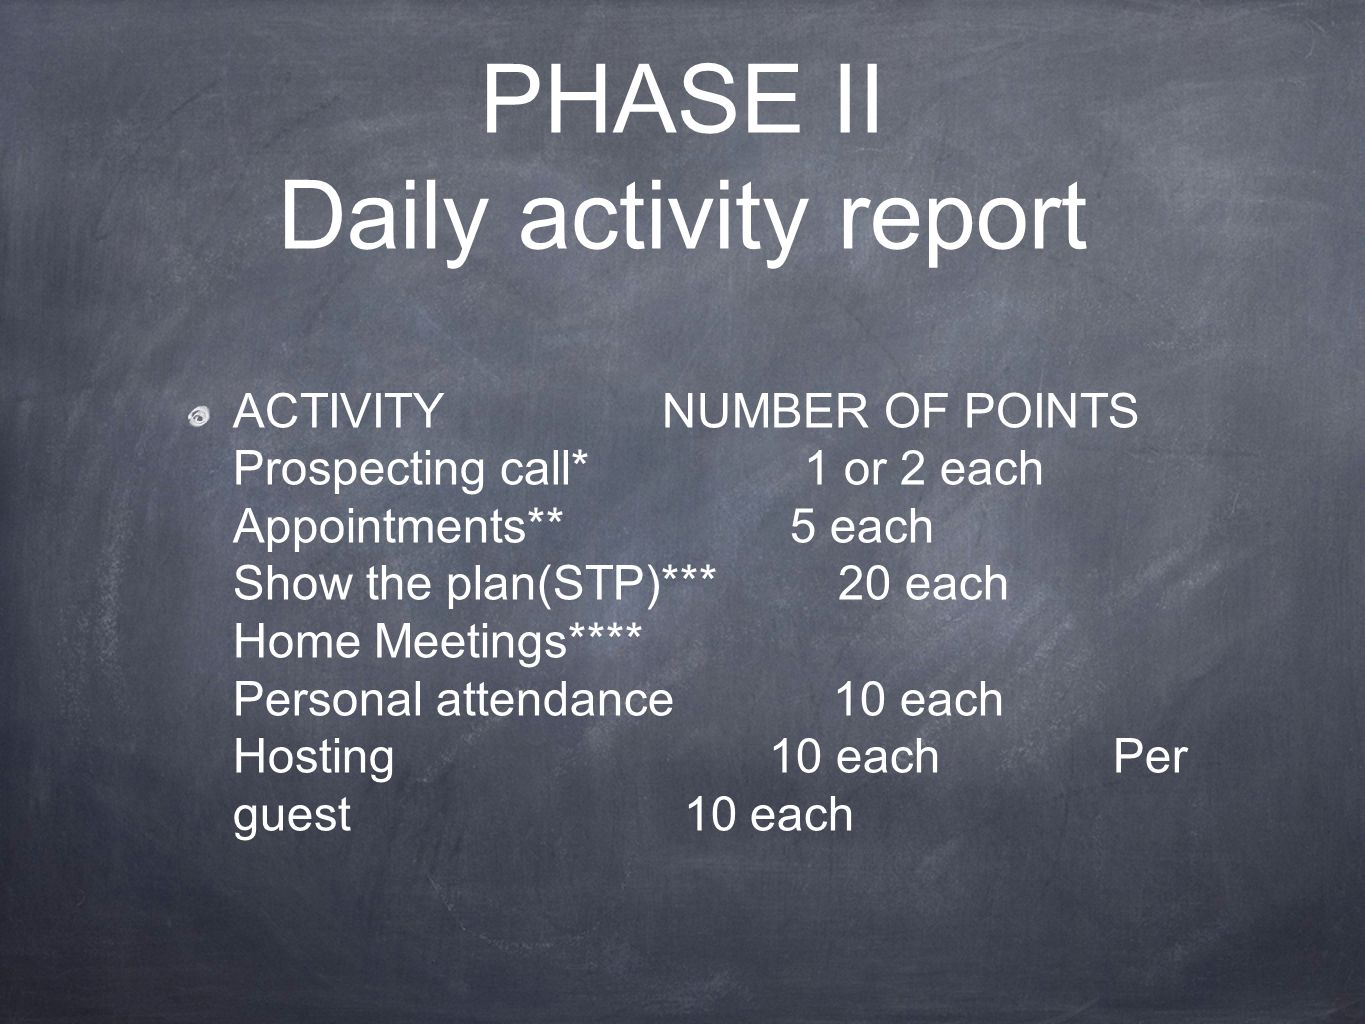 PHASE II Daily activity report